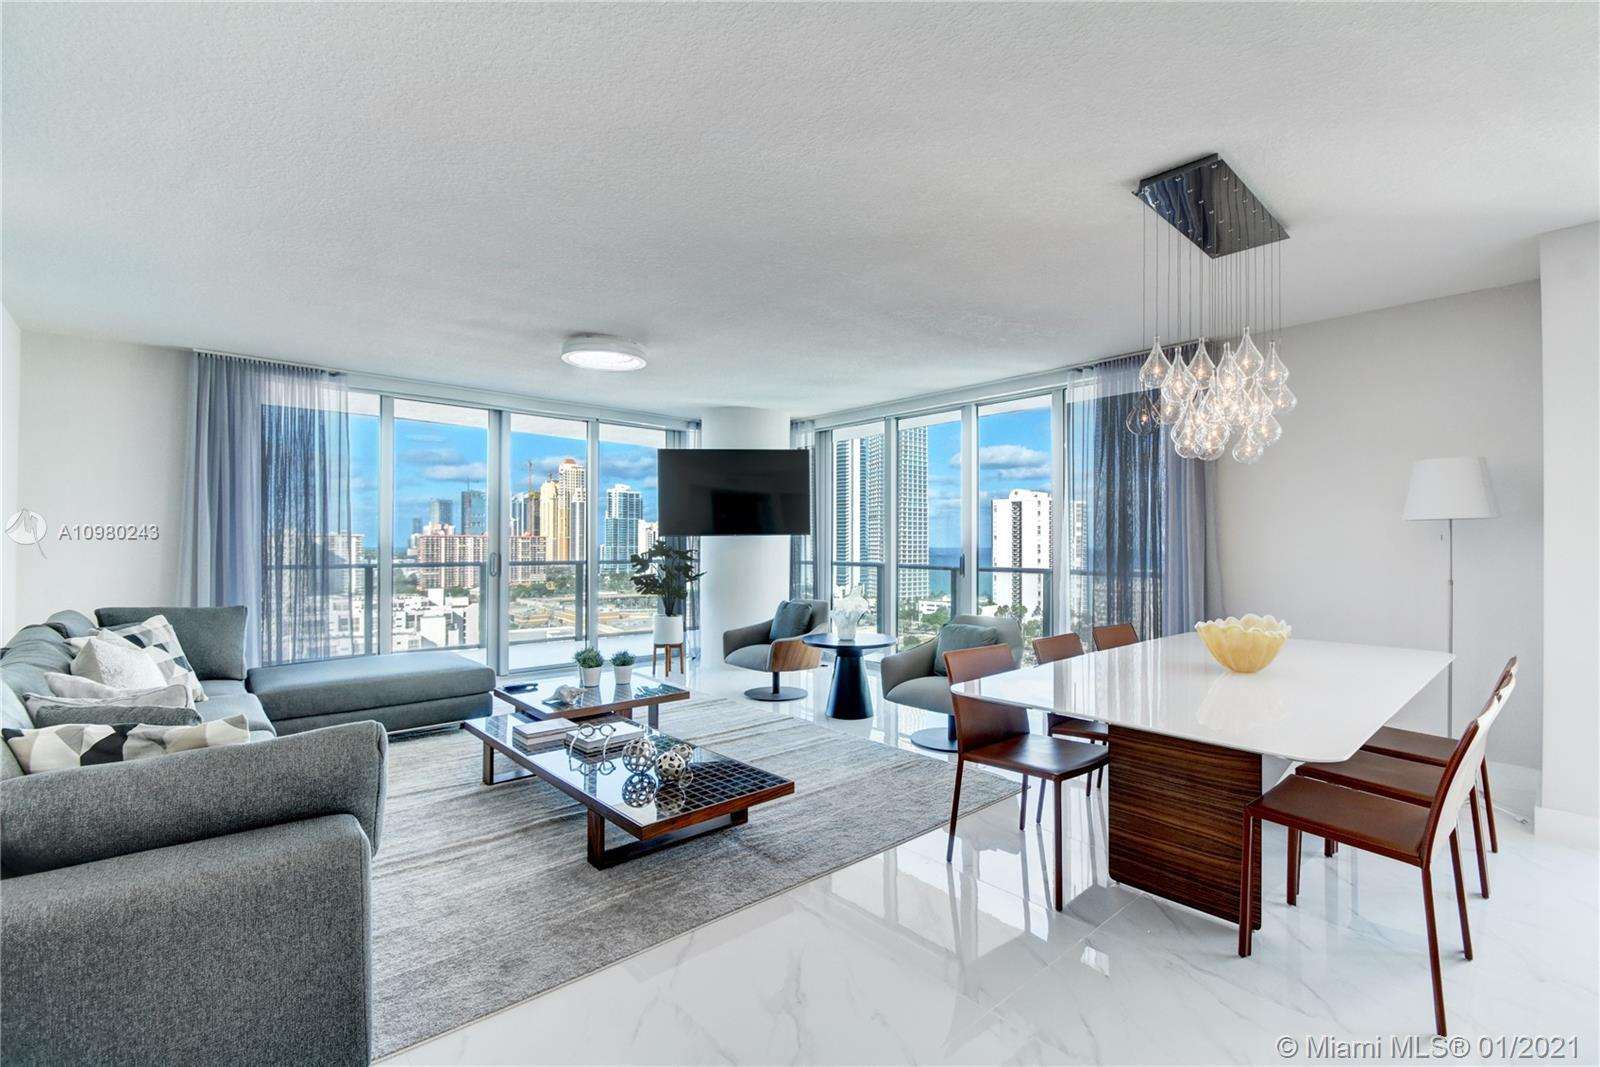 Wow! PRICED TO SELL, completely furnished, awesome views from this high floor to the city, ocean, an